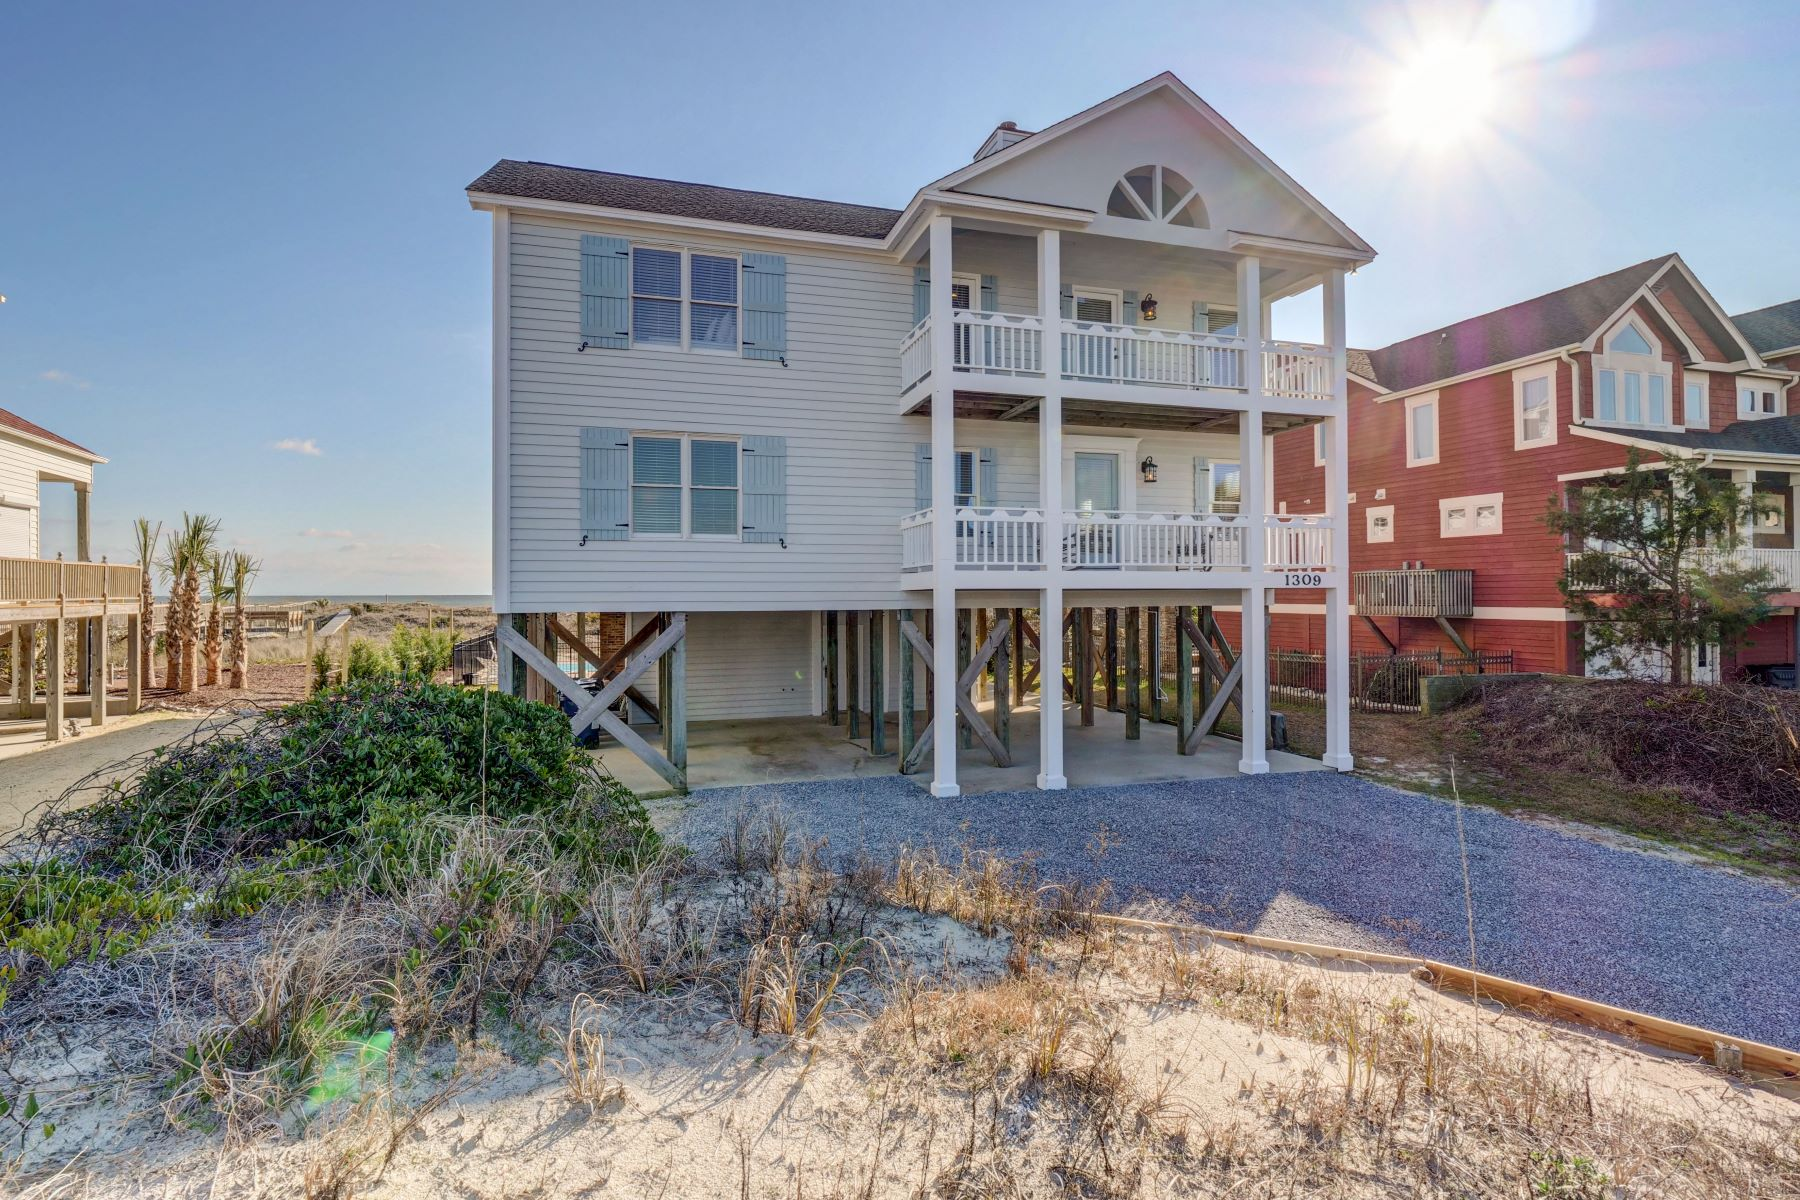 Single Family Homes for Sale at Coastal Dreams With Pool and More 1309 Ocean Blvd W Holden Beach, North Carolina 28462 United States